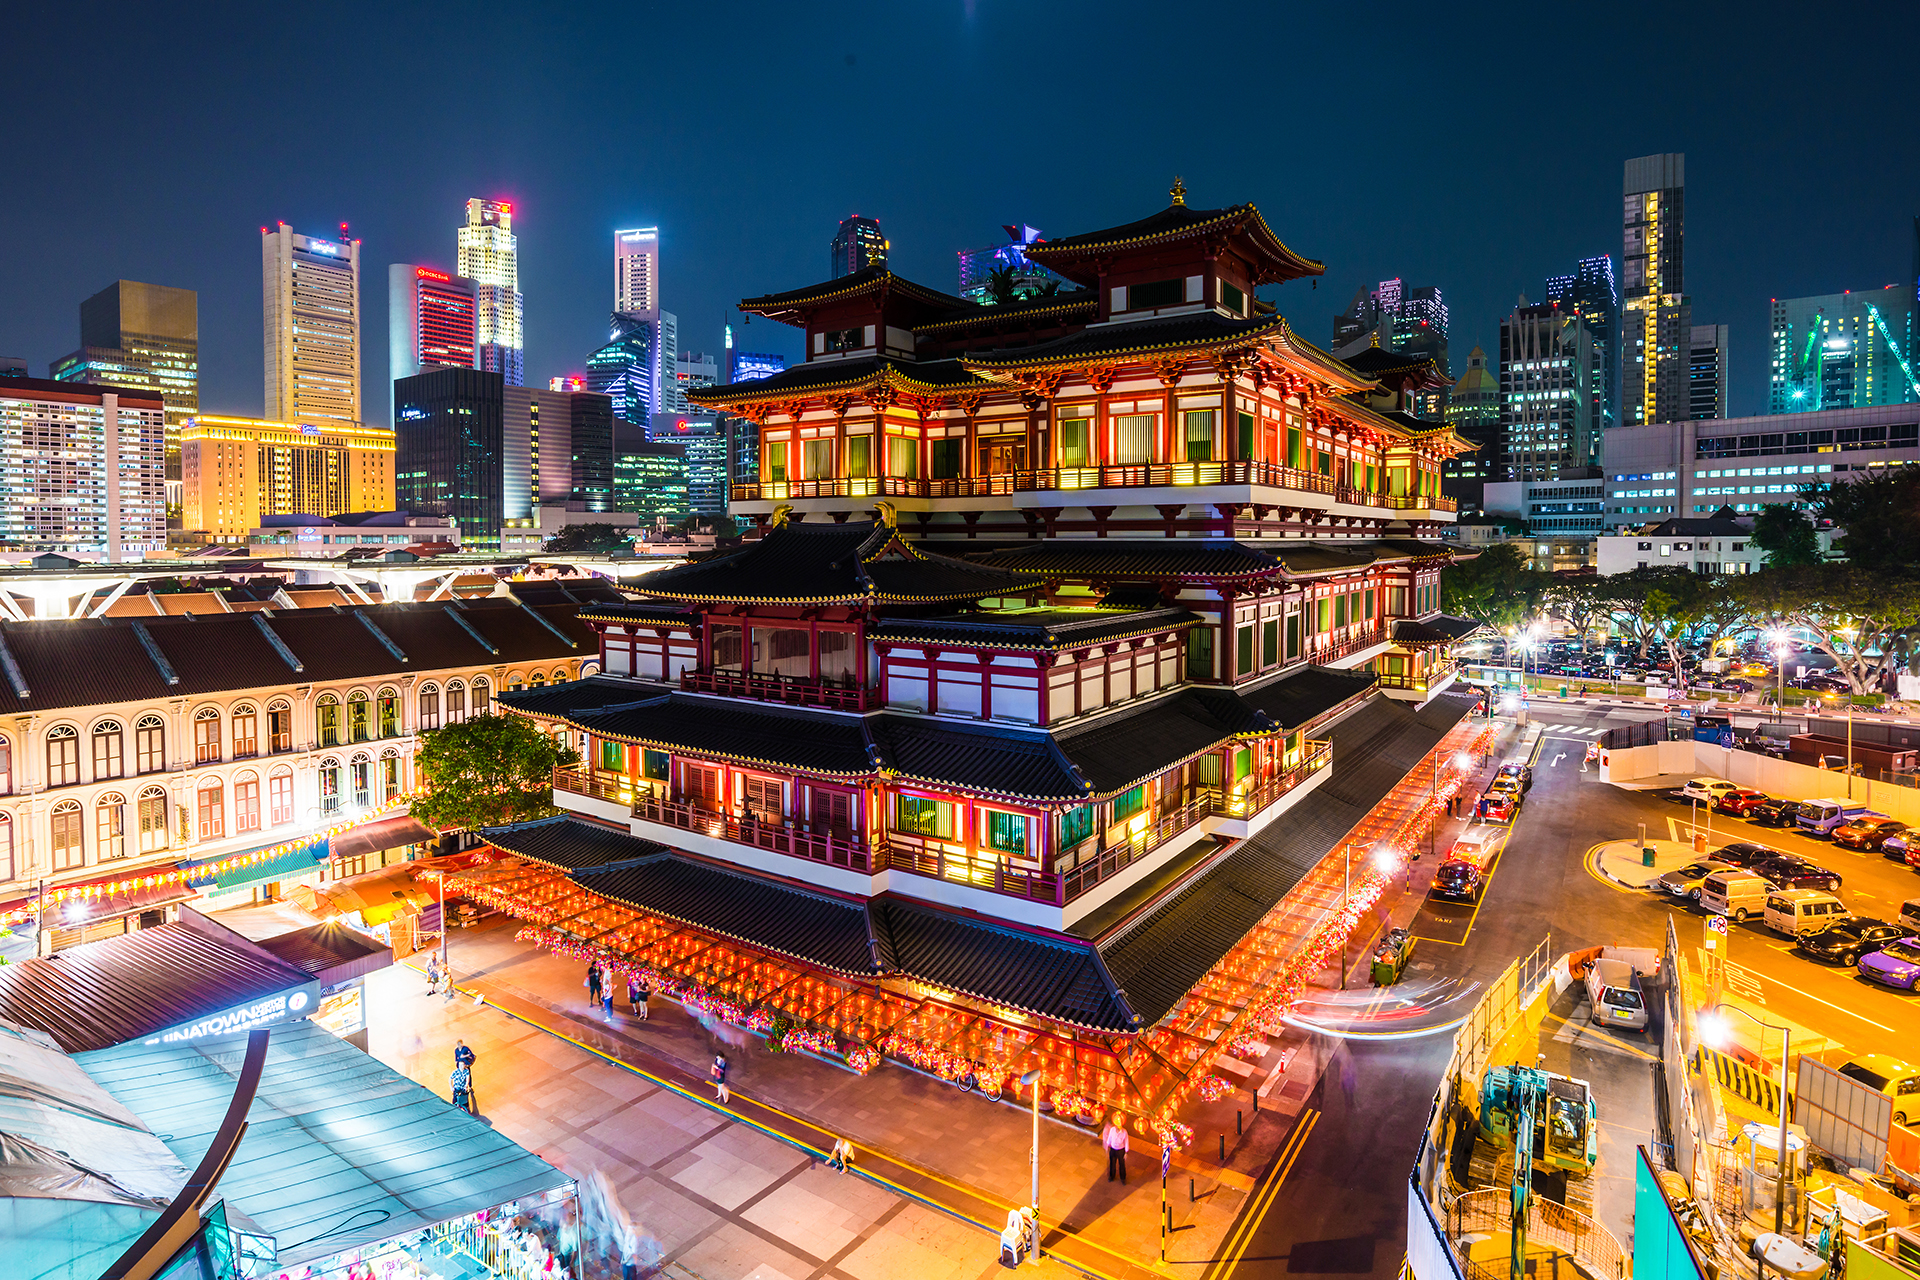 Chinatown Singapore Buddha Tooth Relic Temple Check Out Chinatown Singapore Buddha Tooth Relic